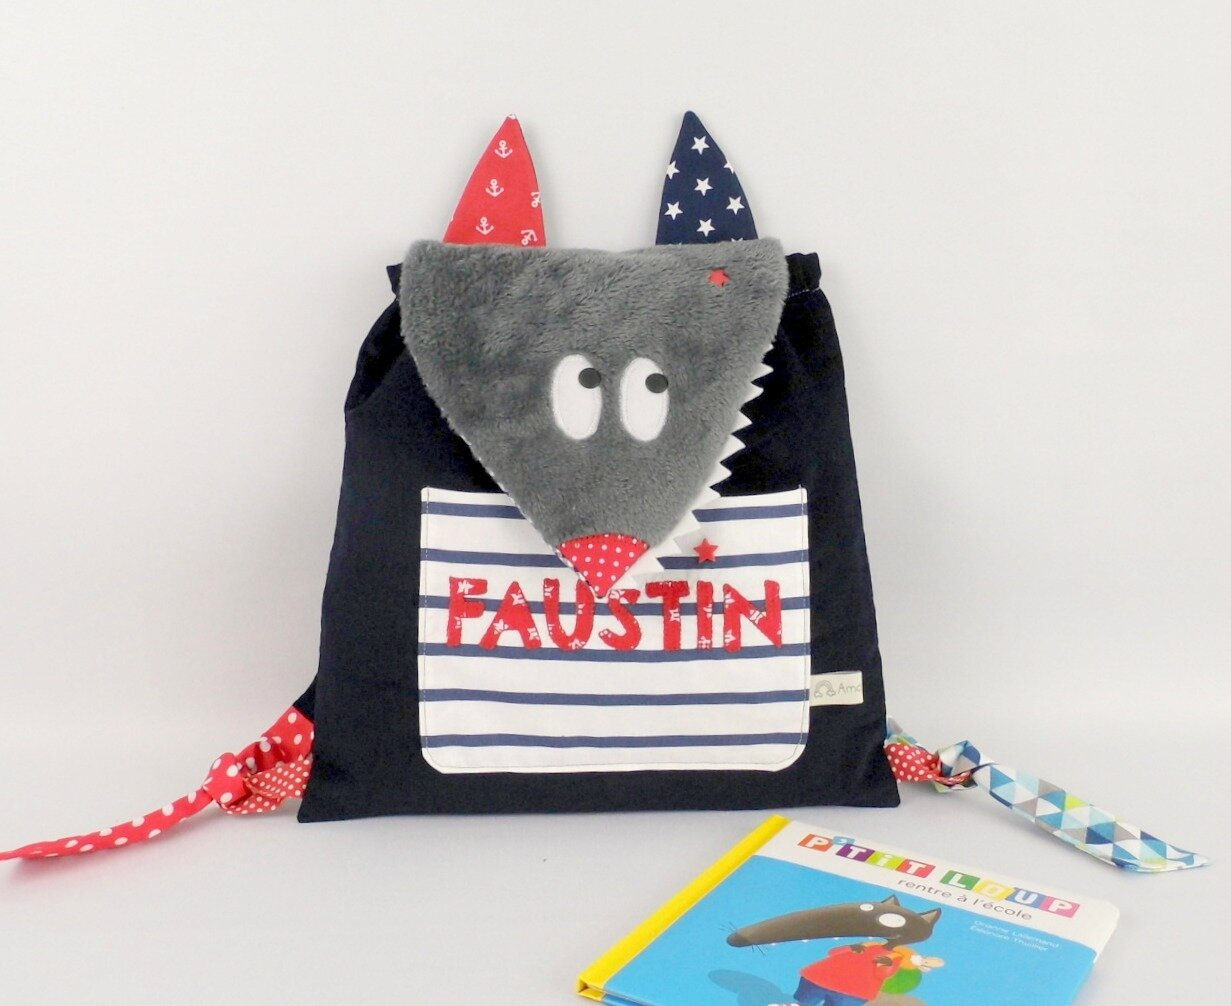 Sac à dos garçon personnalisé prénom Loup Faustin bleu marine rouge blanc style marin navy and red toddler backpack personnalized name Wolf